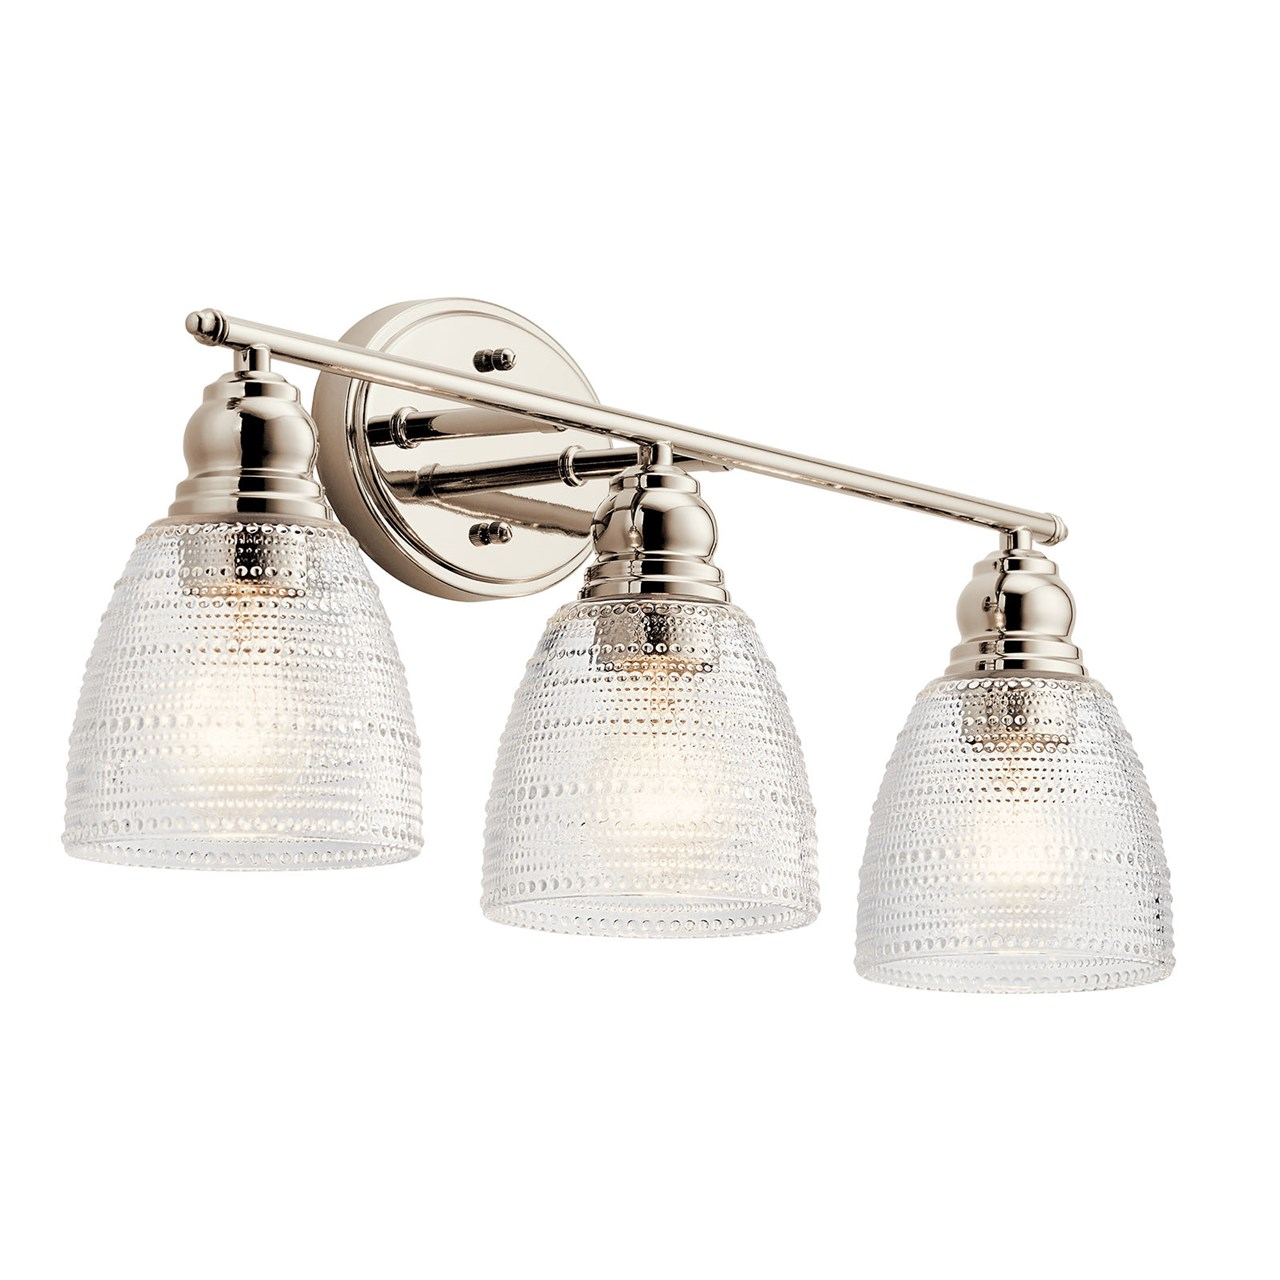 Karmarie 3 Light Vanity Light Polished Nickel™